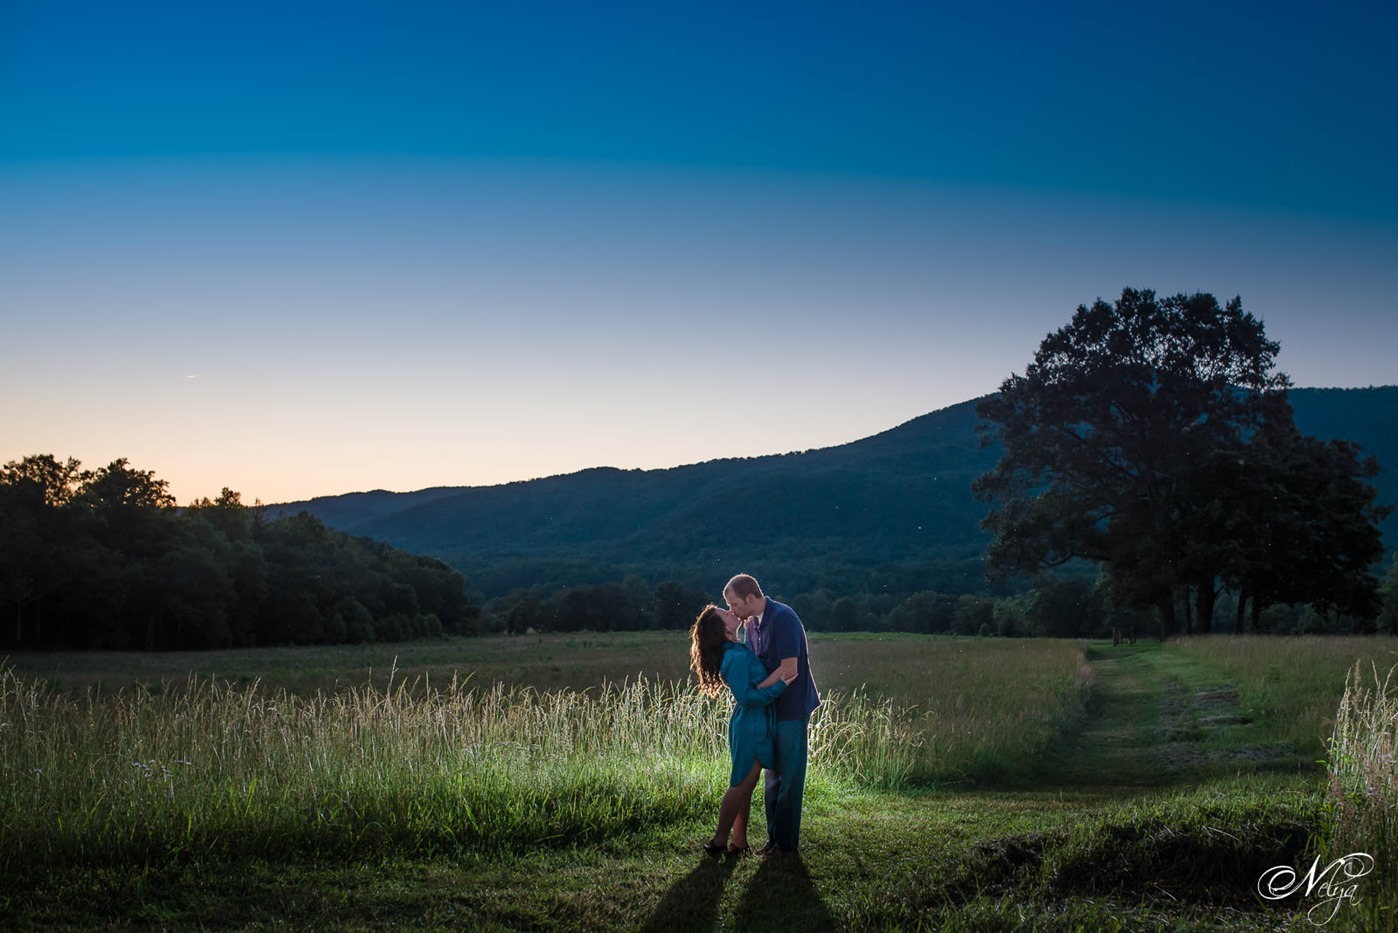 cades-cove-spring-engagement-2725_thumb.jpg